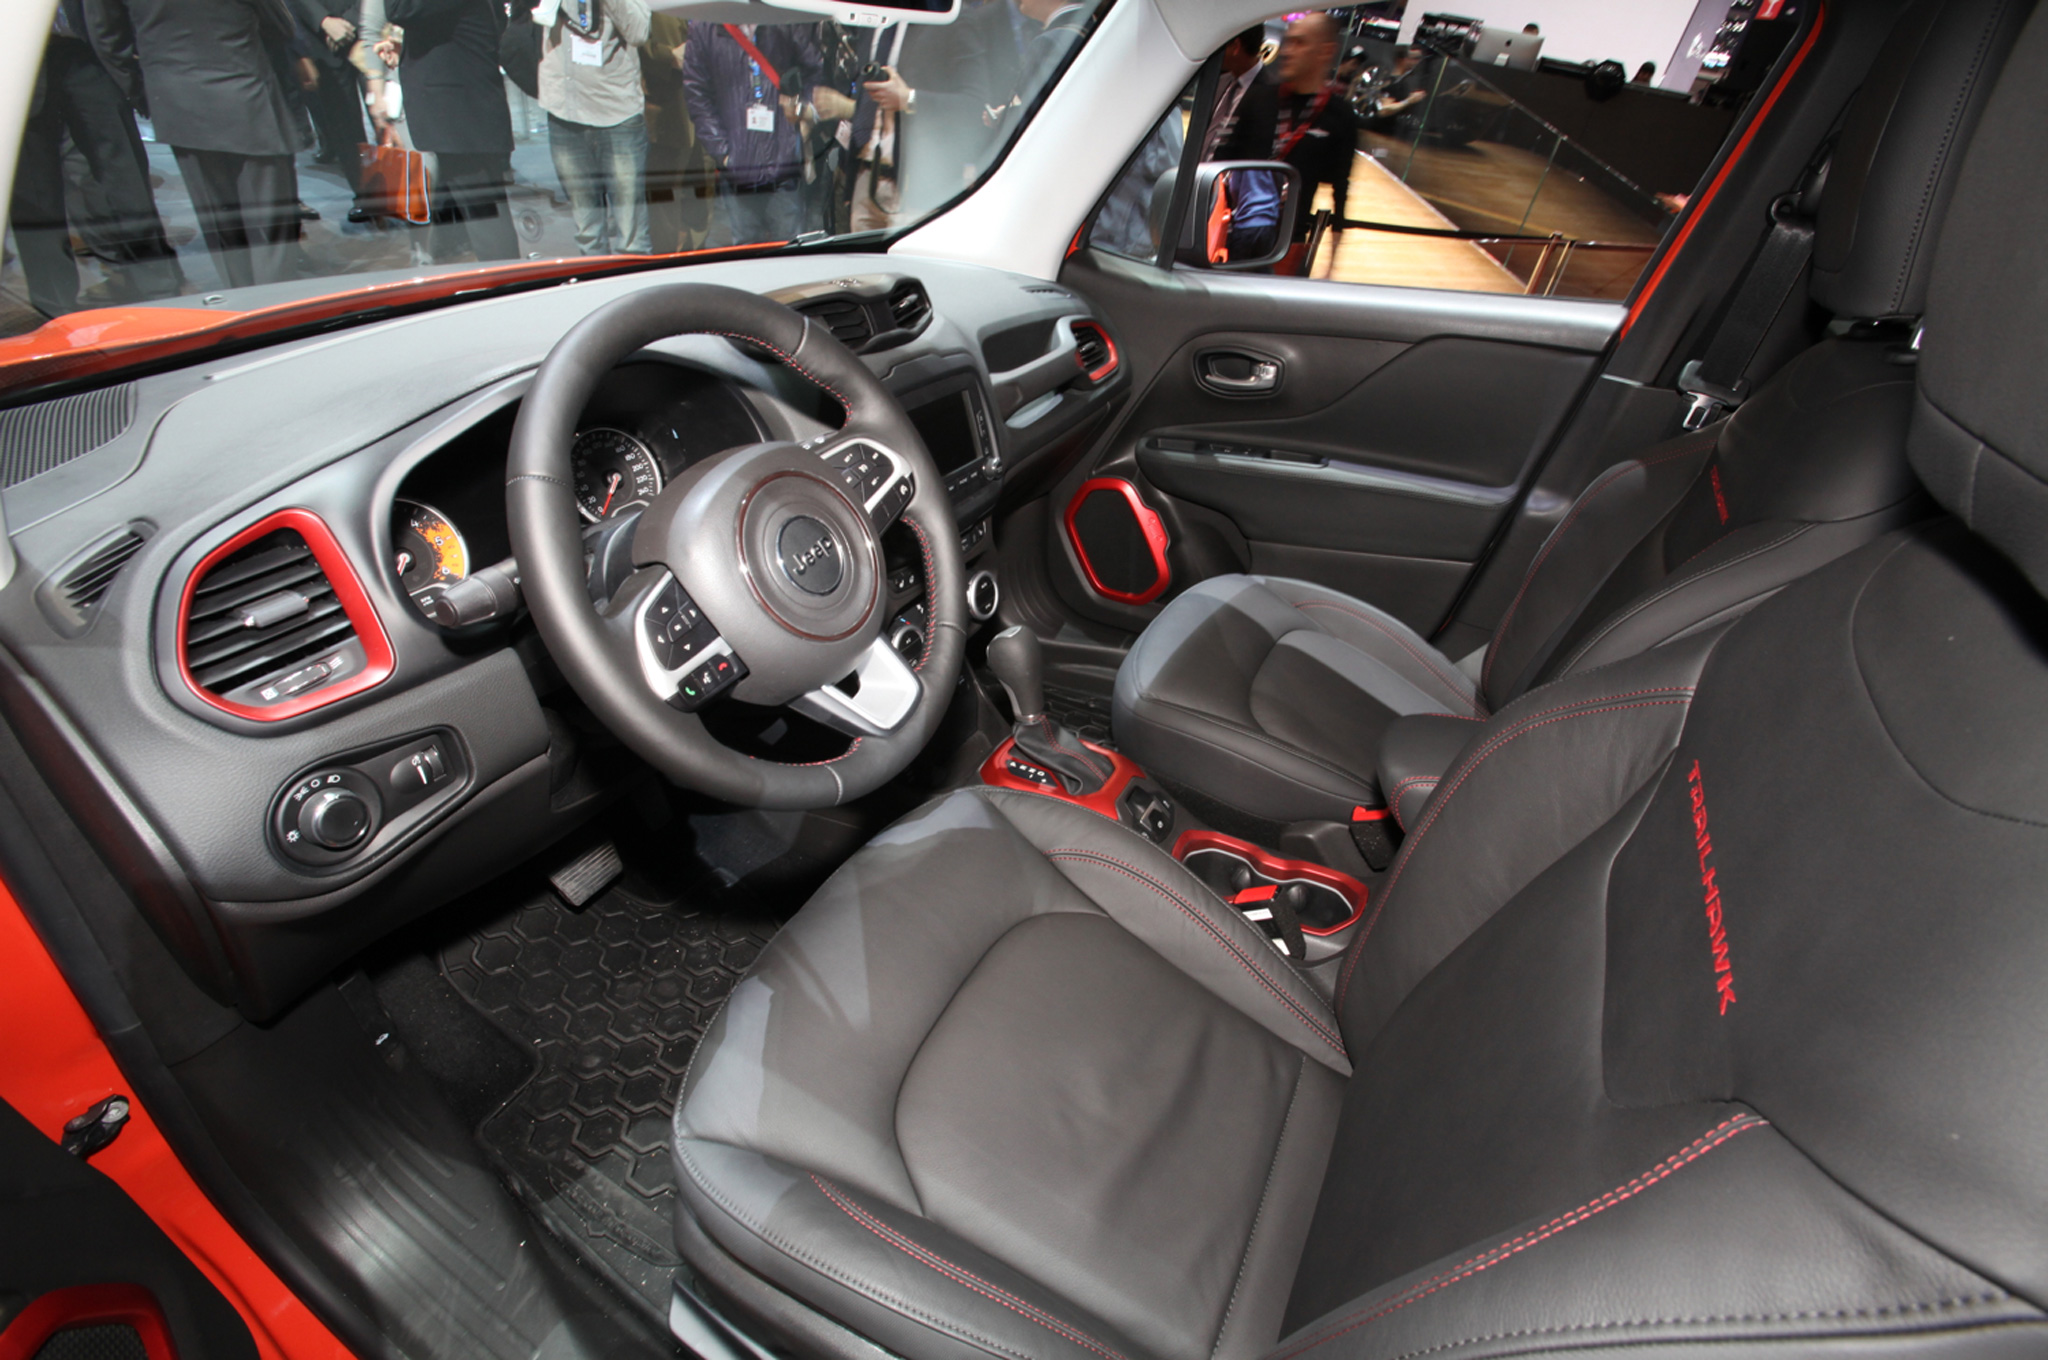 adorable-design-of-the-black-ad-red-accents-seats-ideas-added-with-black-dash-as-the-jeep-renegade-2015-interior